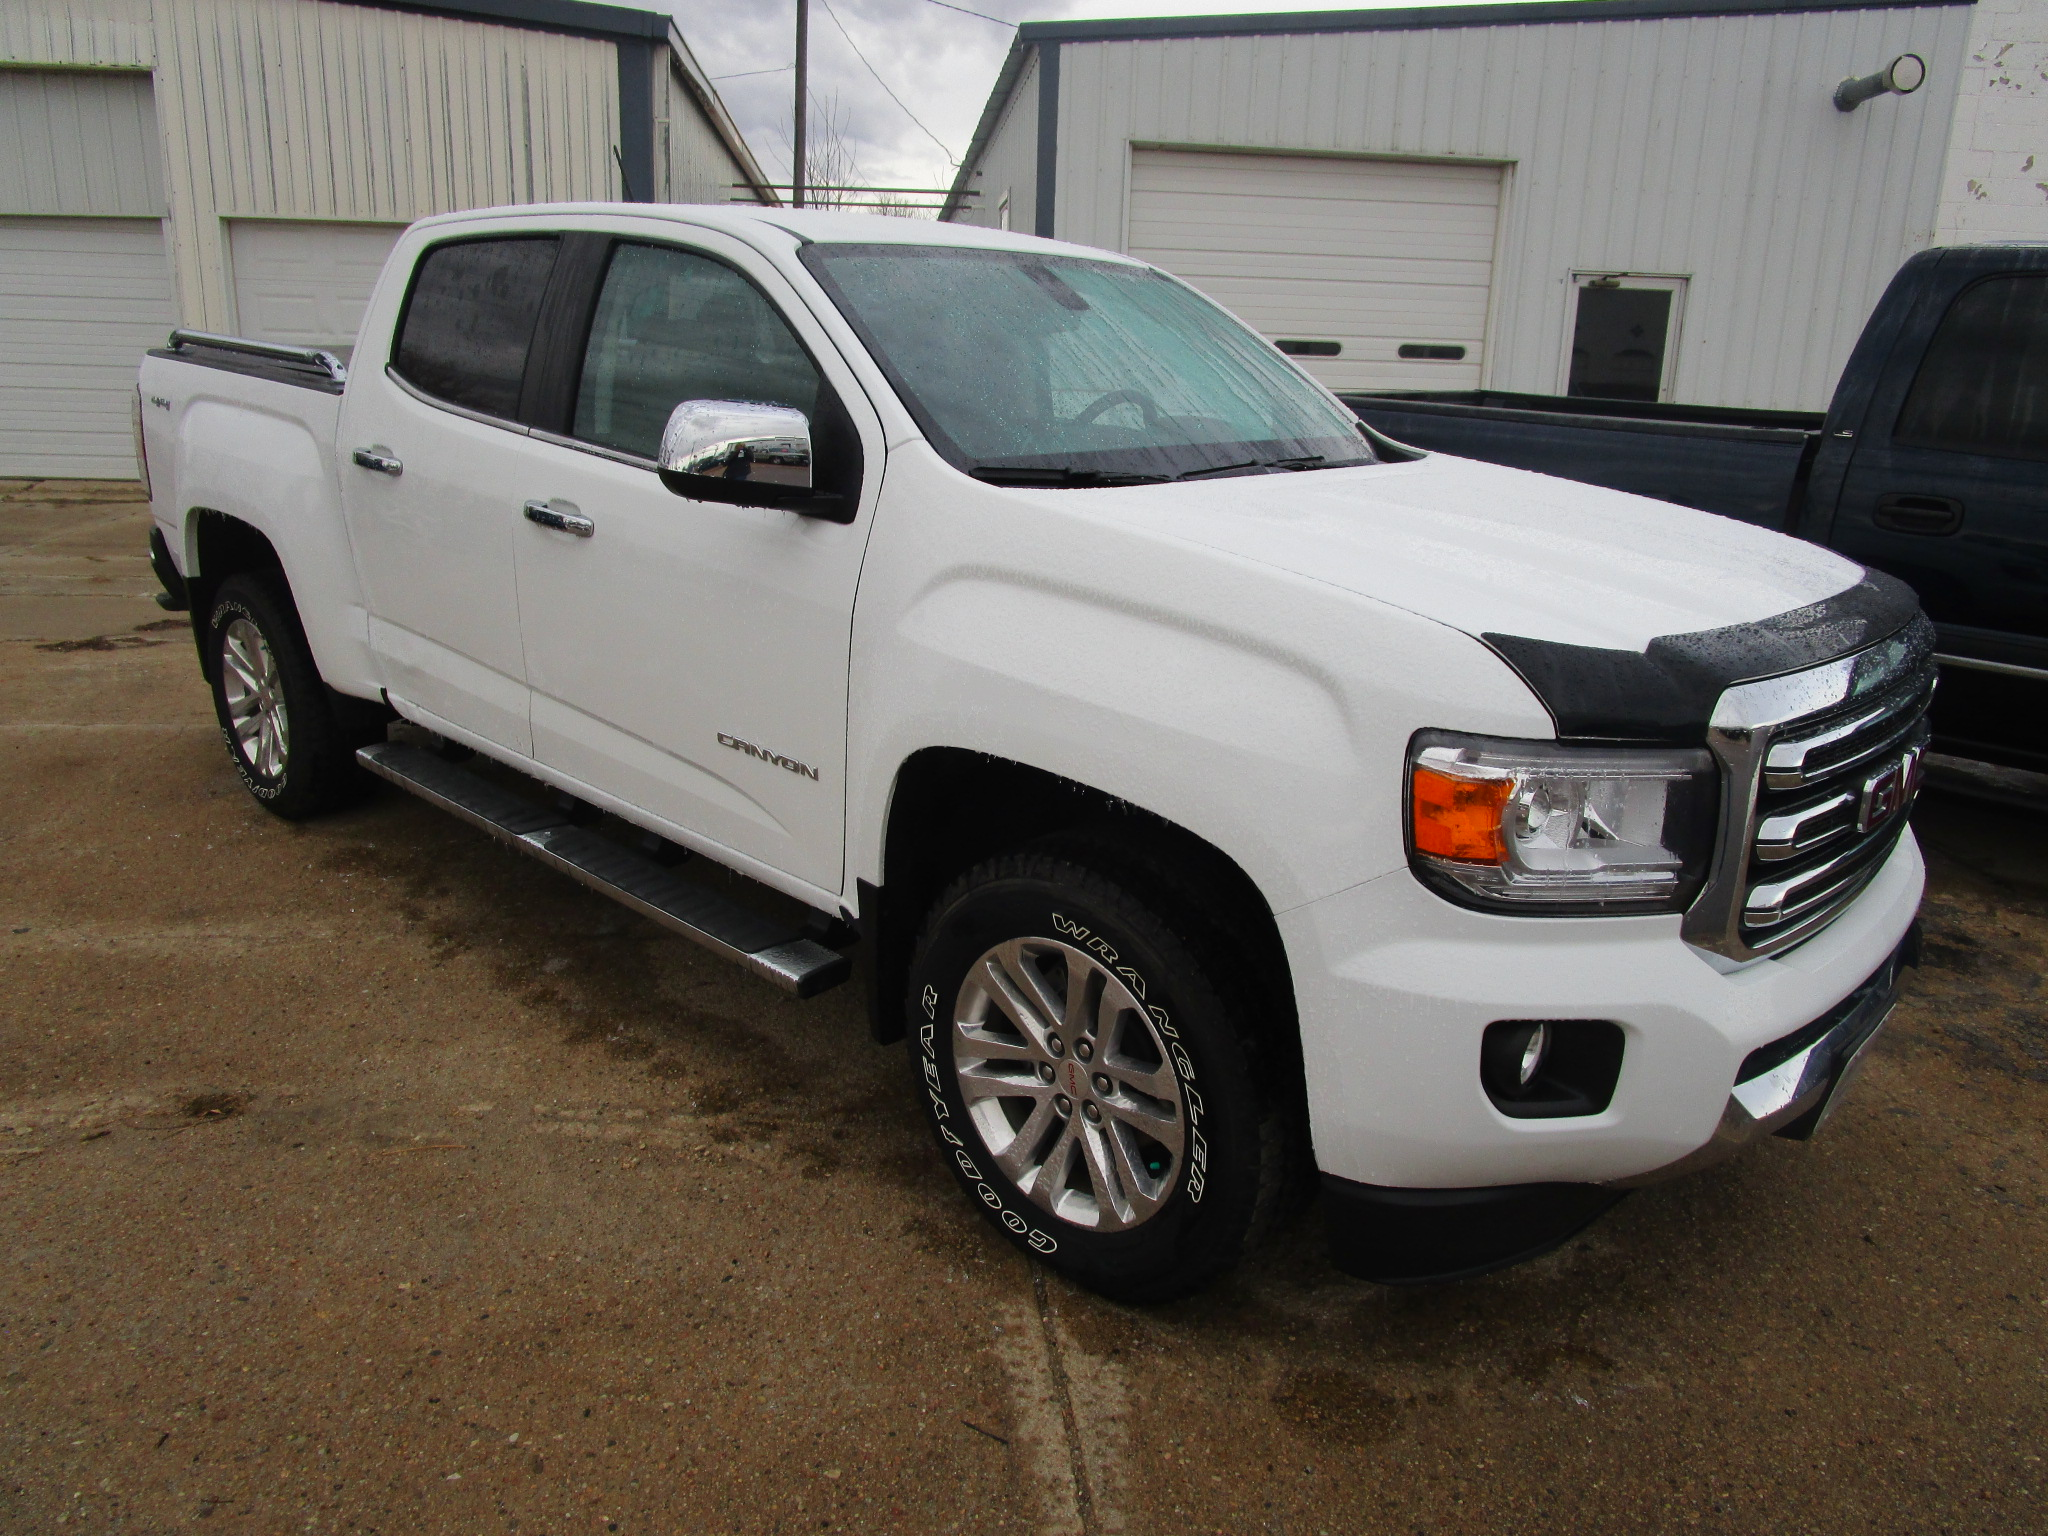 2018 GMC CANYON $34,900